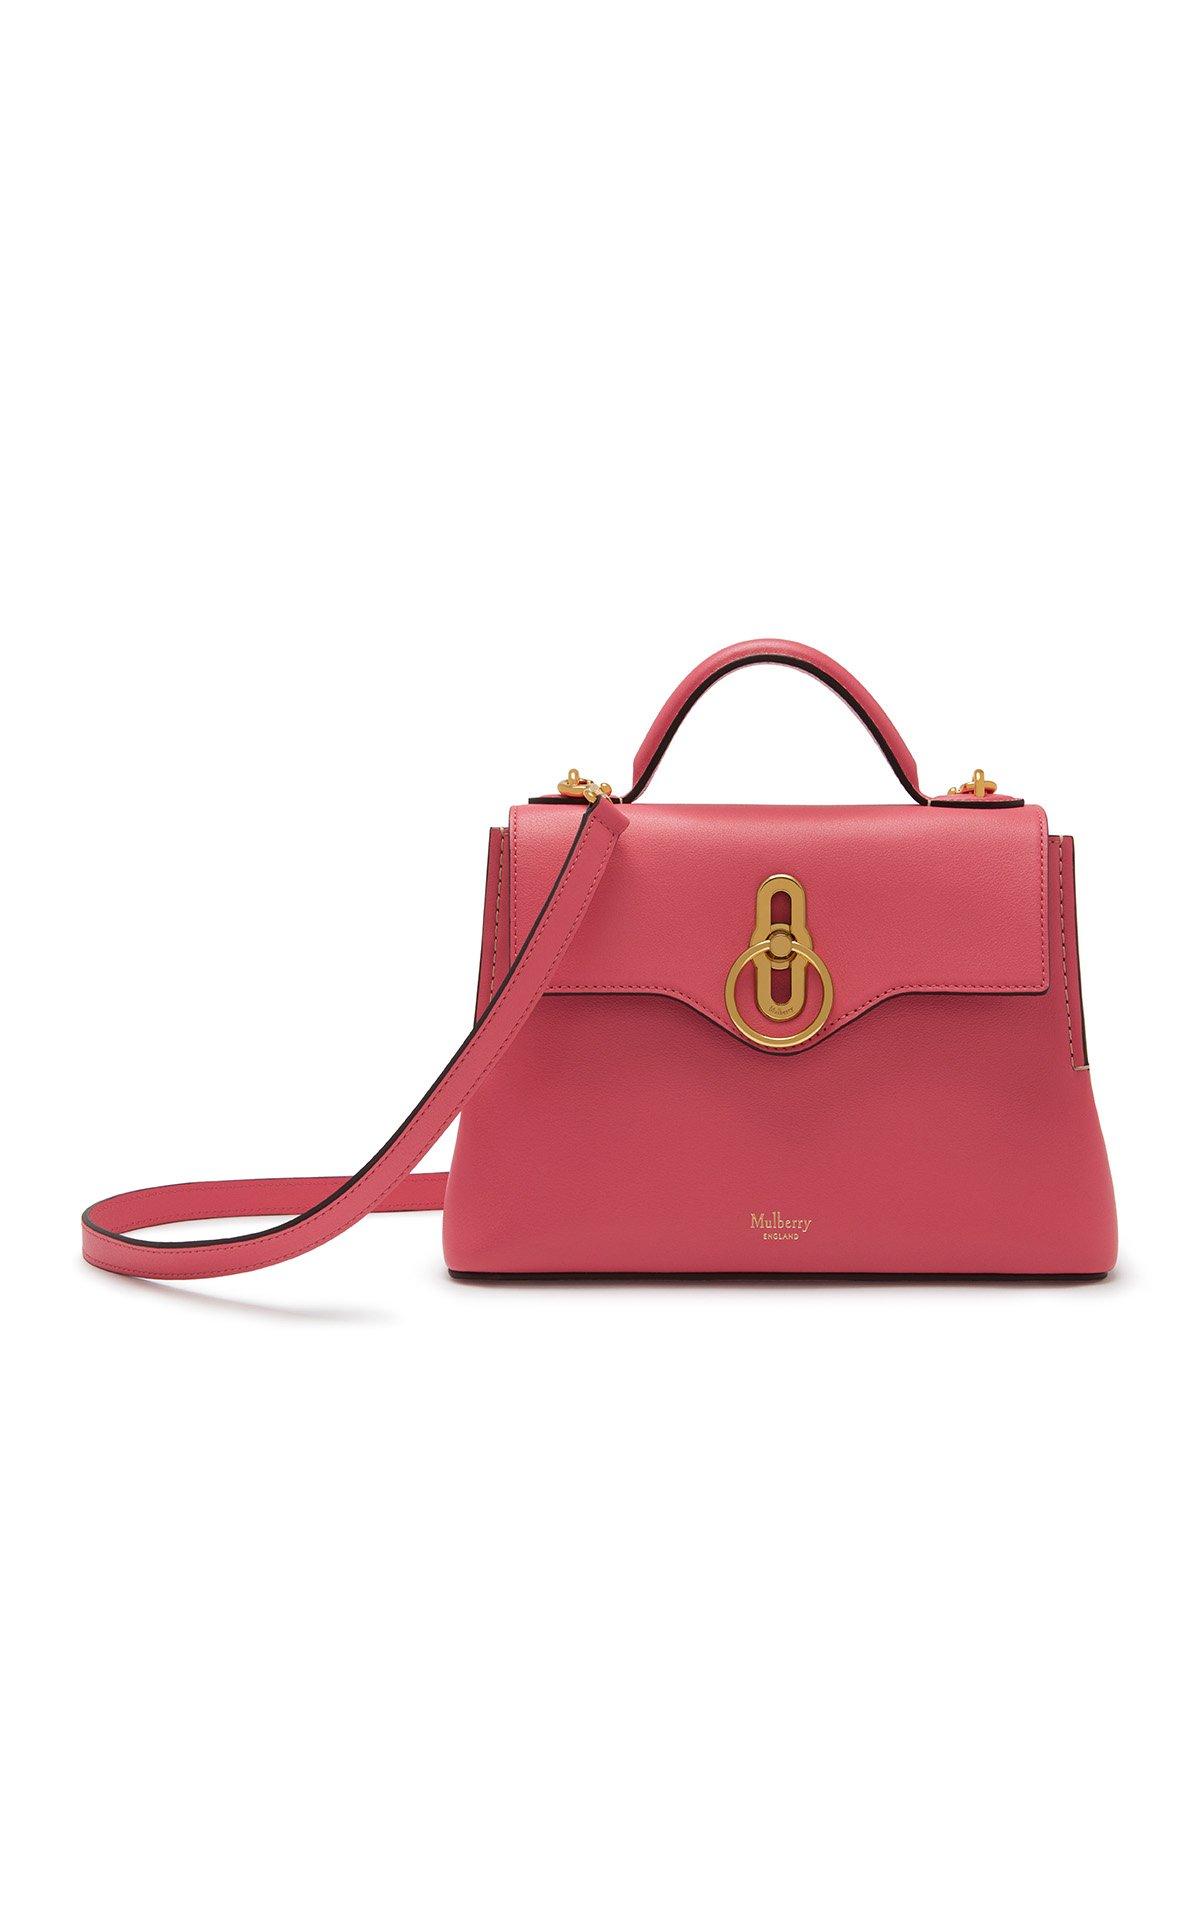 Mulberry Mini seaton silky calf from Bicester Village